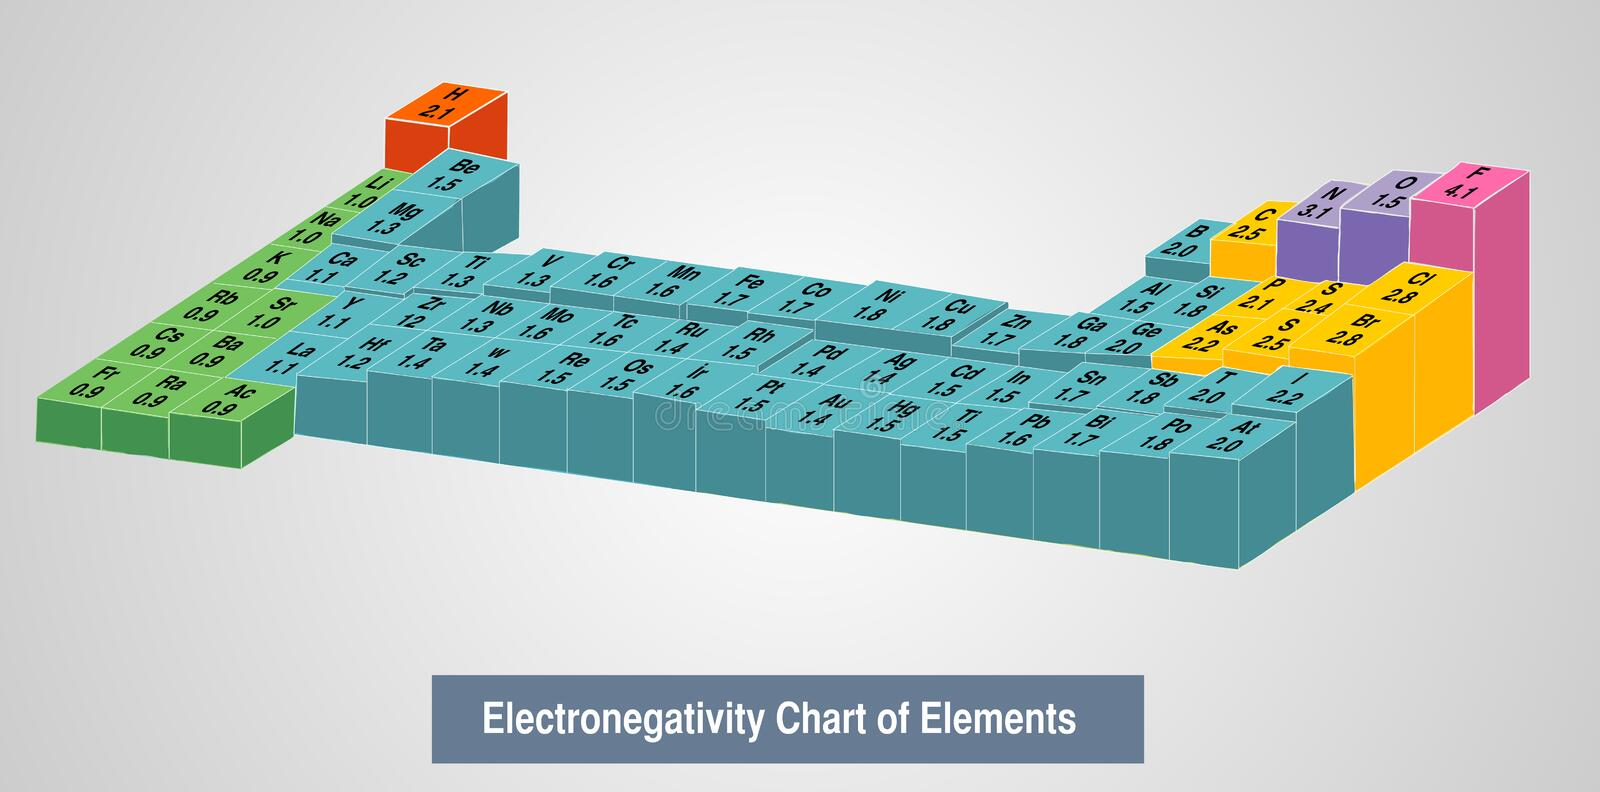 Vector Illustration Of A Electronegativity Chart Of Elements Stock - electronegativity chart template